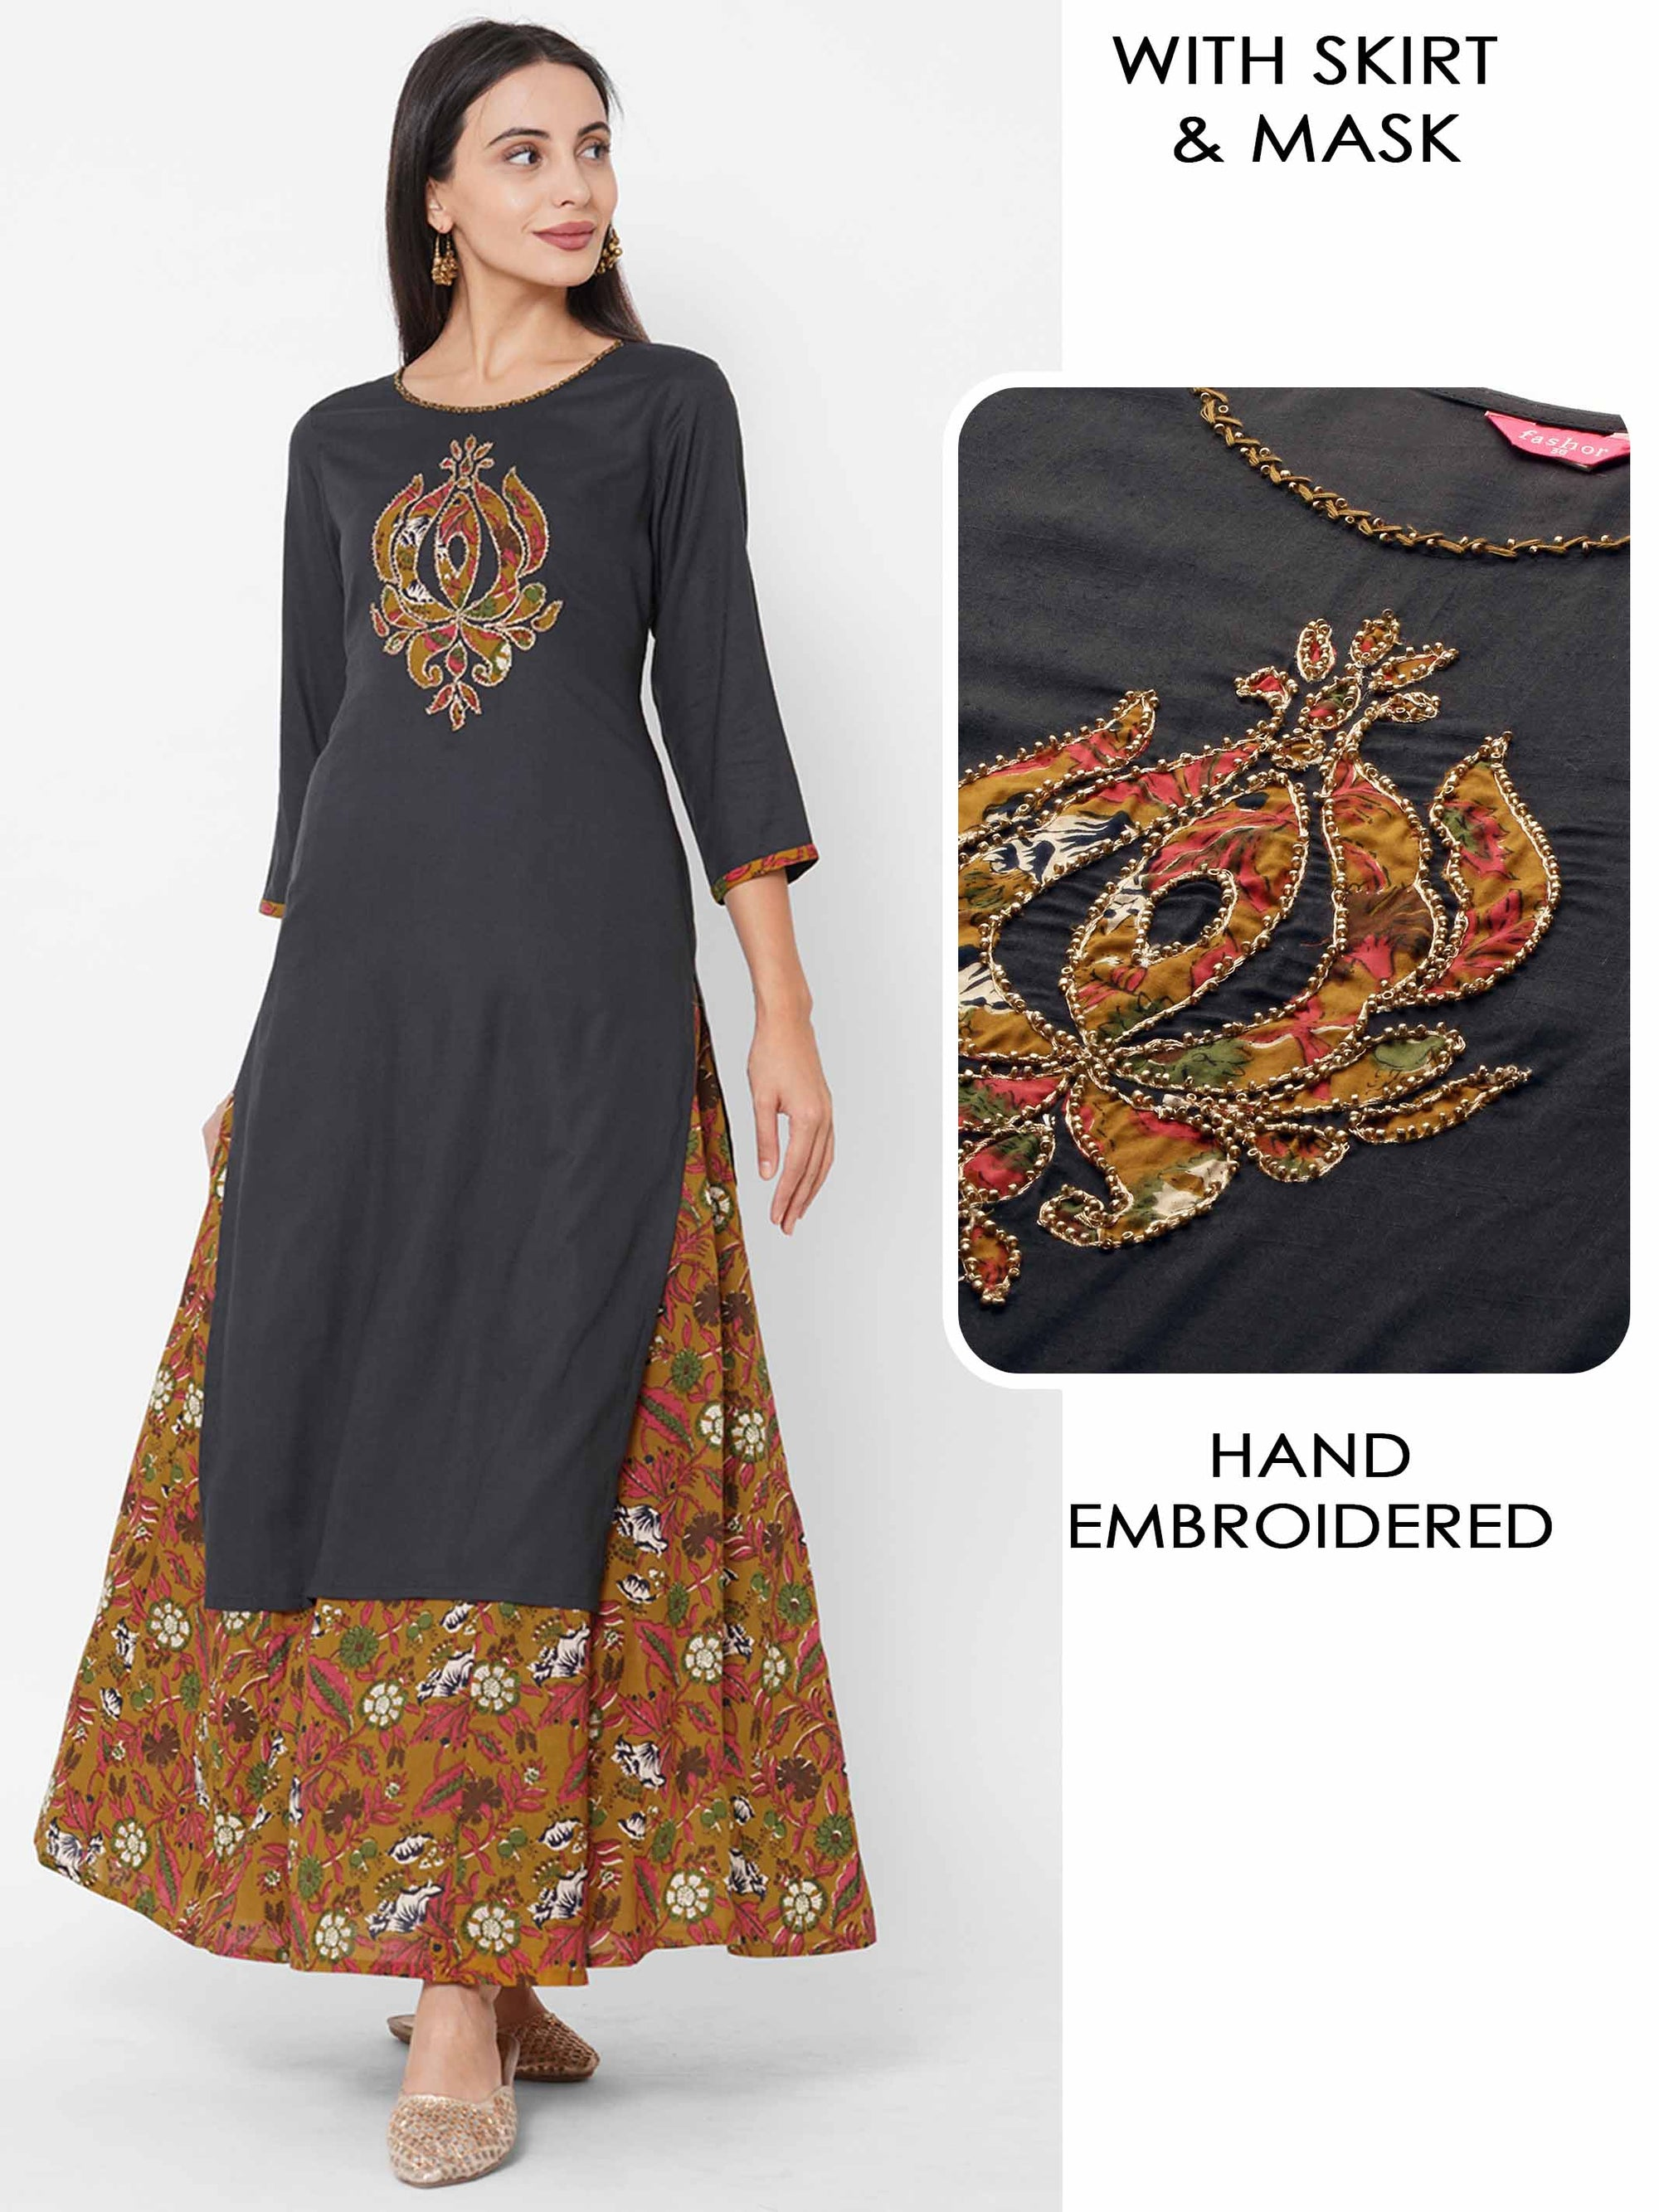 Applique Embroidered Kurta with Floral Jaal Printed Skirt & 2-Ply Mask – Dark Grey